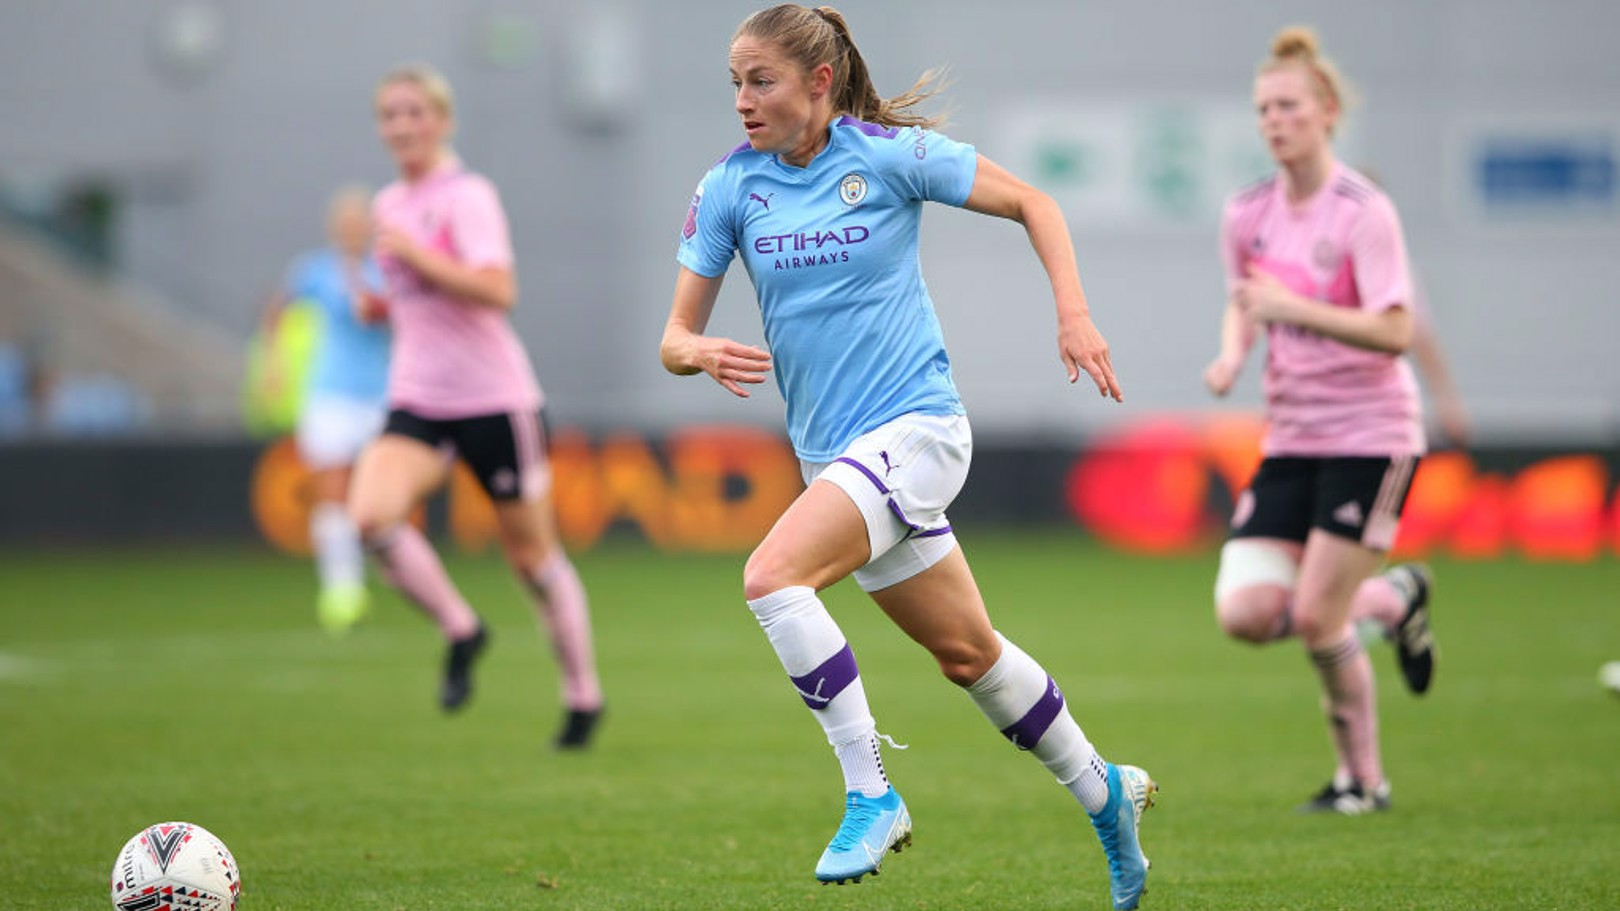 TEAM PLAYER: Cushing praised Beckie's willingness to help the team.